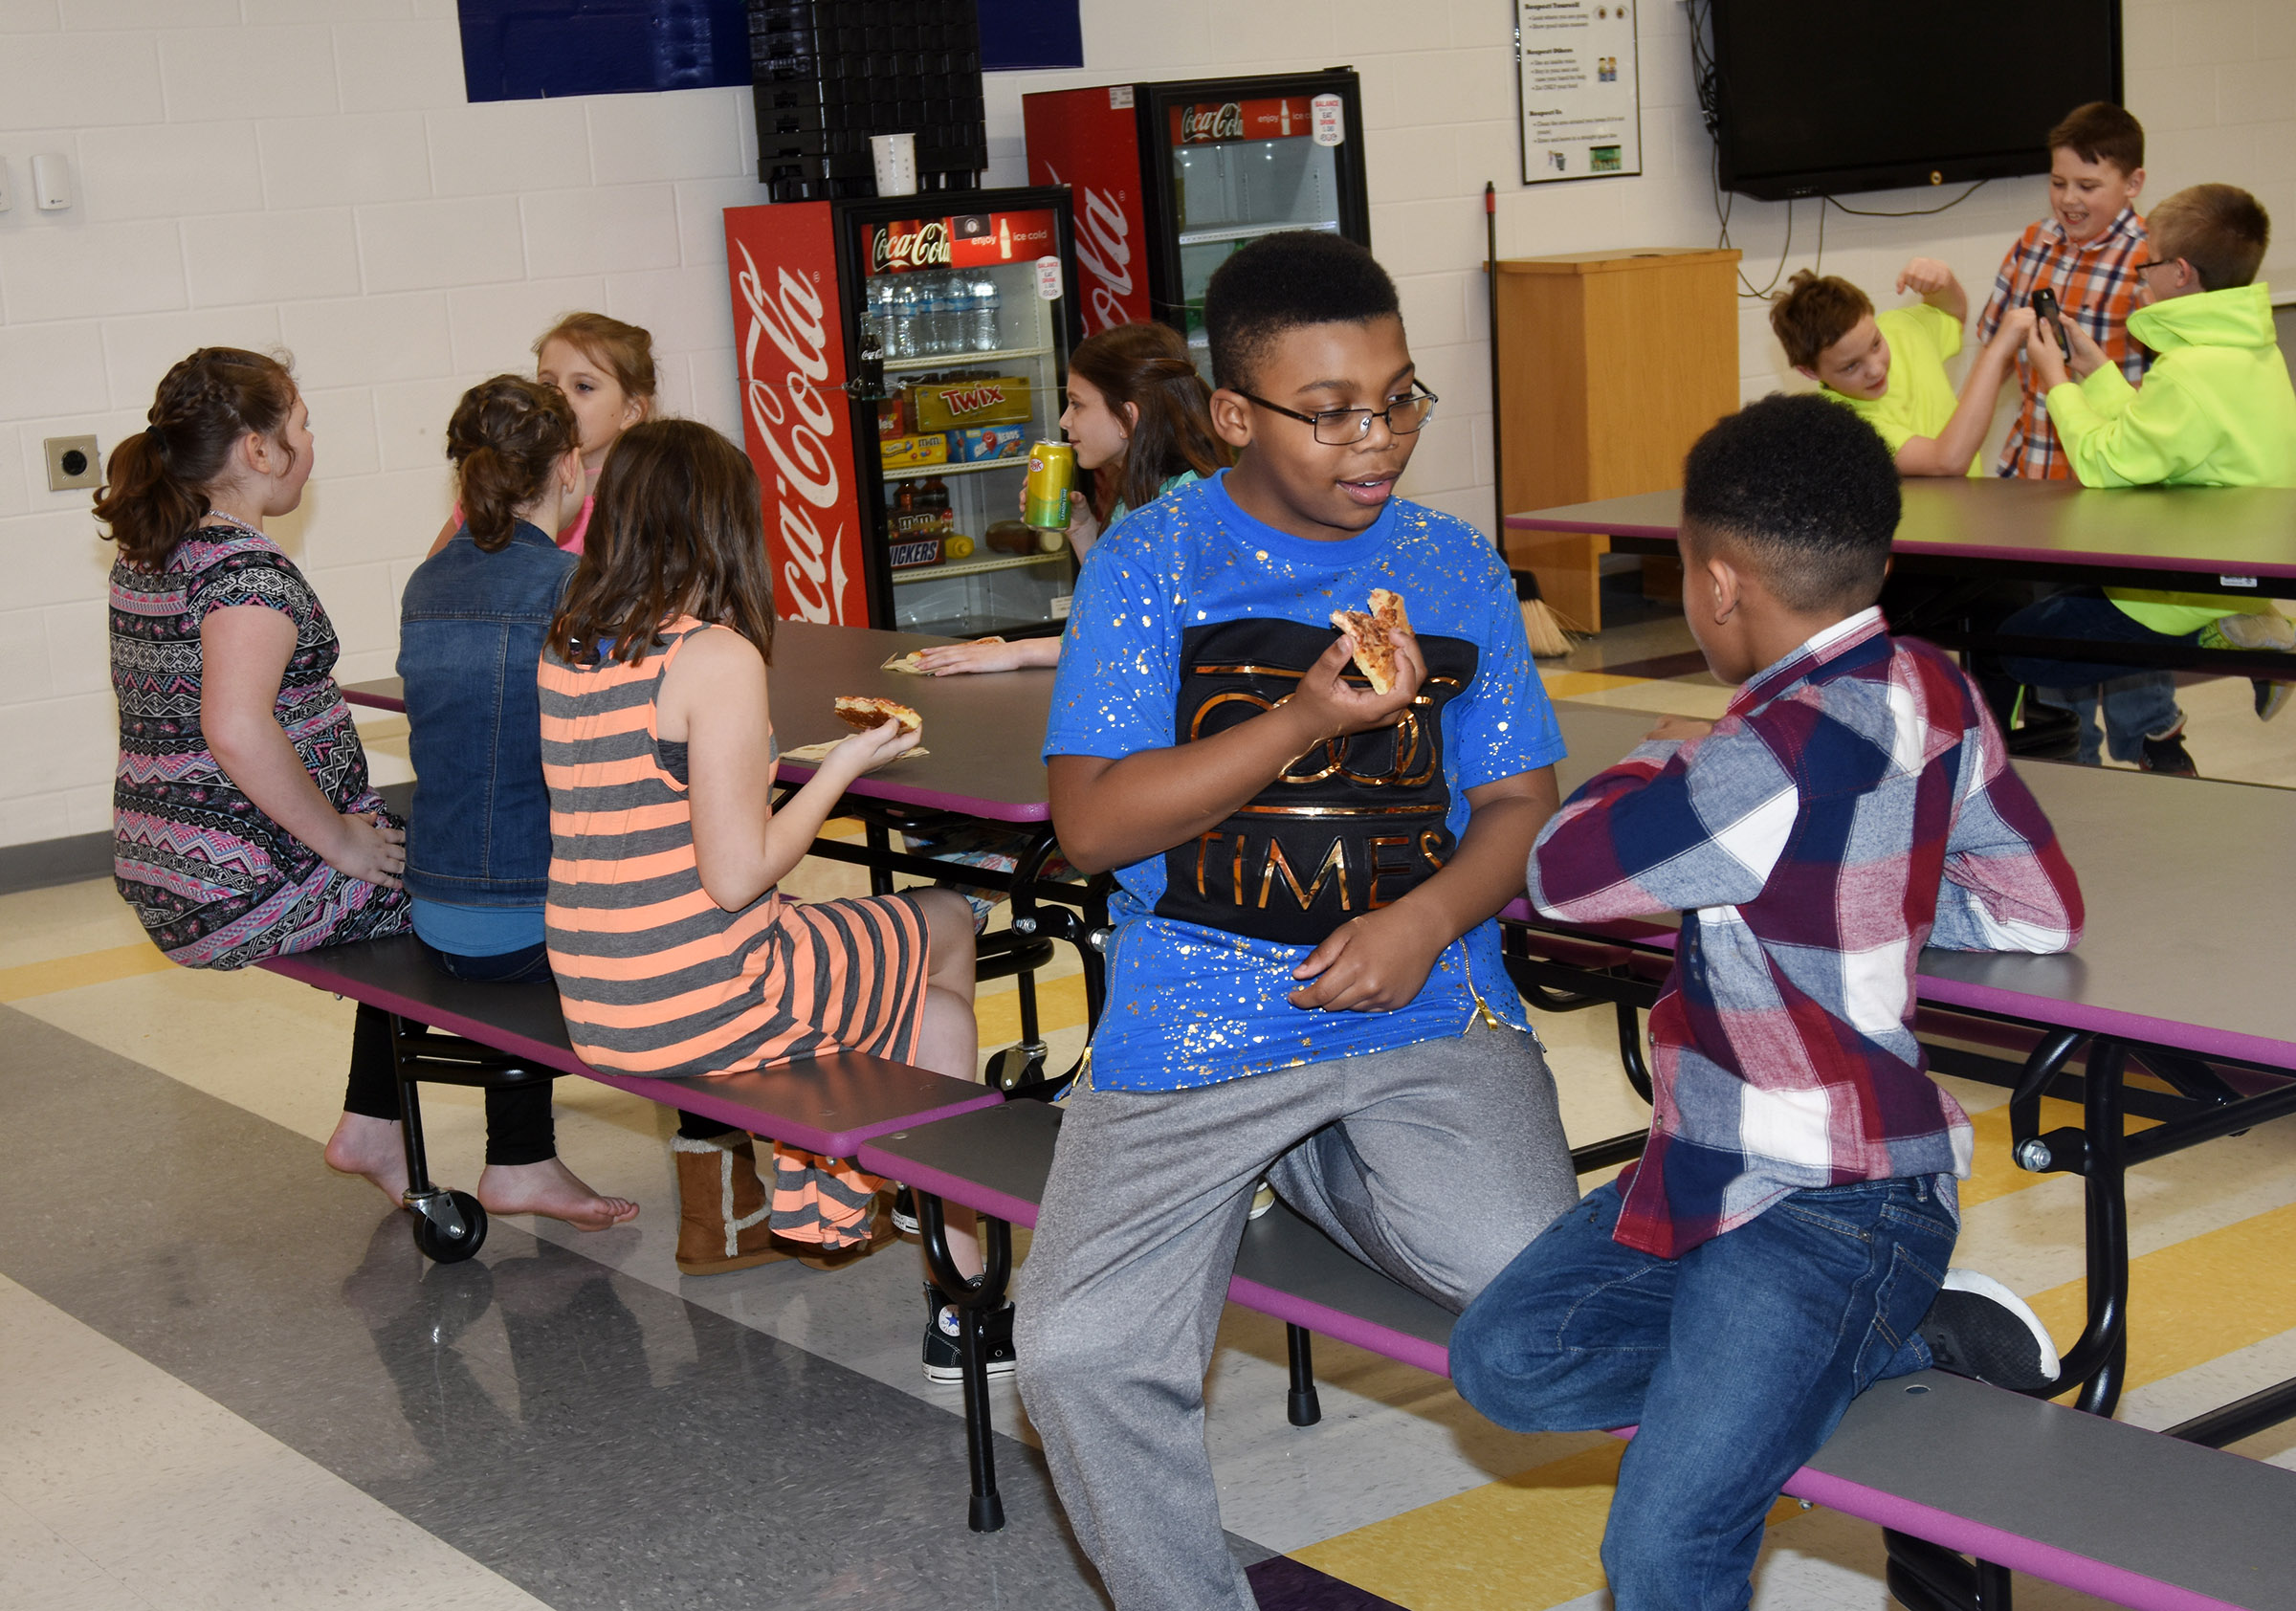 CES students enjoy snacks together.